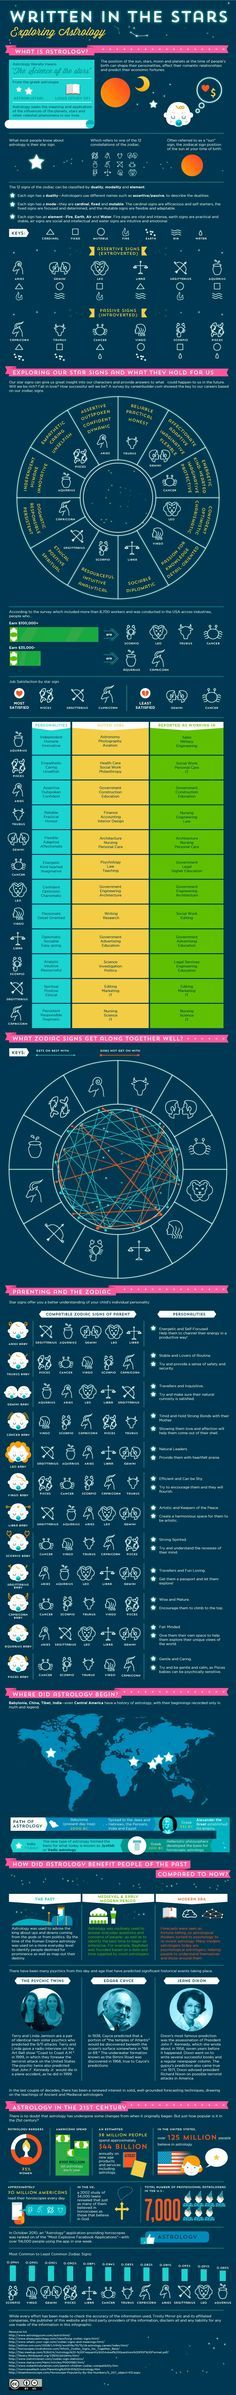 Astrology 101: People from Mirror Horoscopes Team compiled this infographic in an effort to give us a better understanding of what each star sign means in terms of characteristics, relationships and even the jobs we choose. Following to this you will find some historical facts about astrology and how it is perceived in the 21st century.